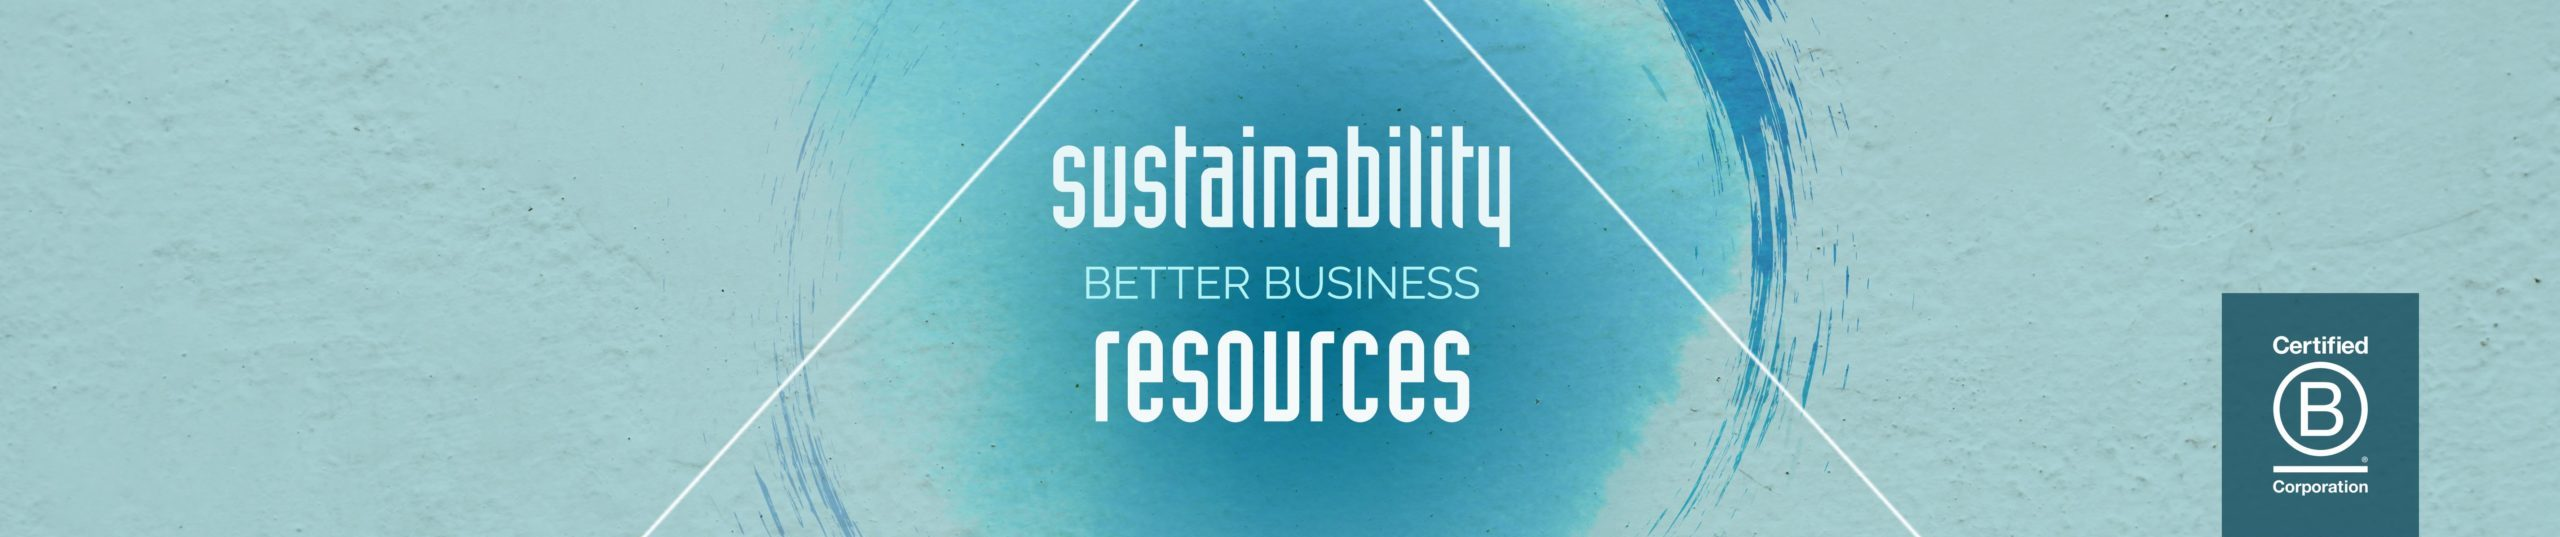 sustainable business resources